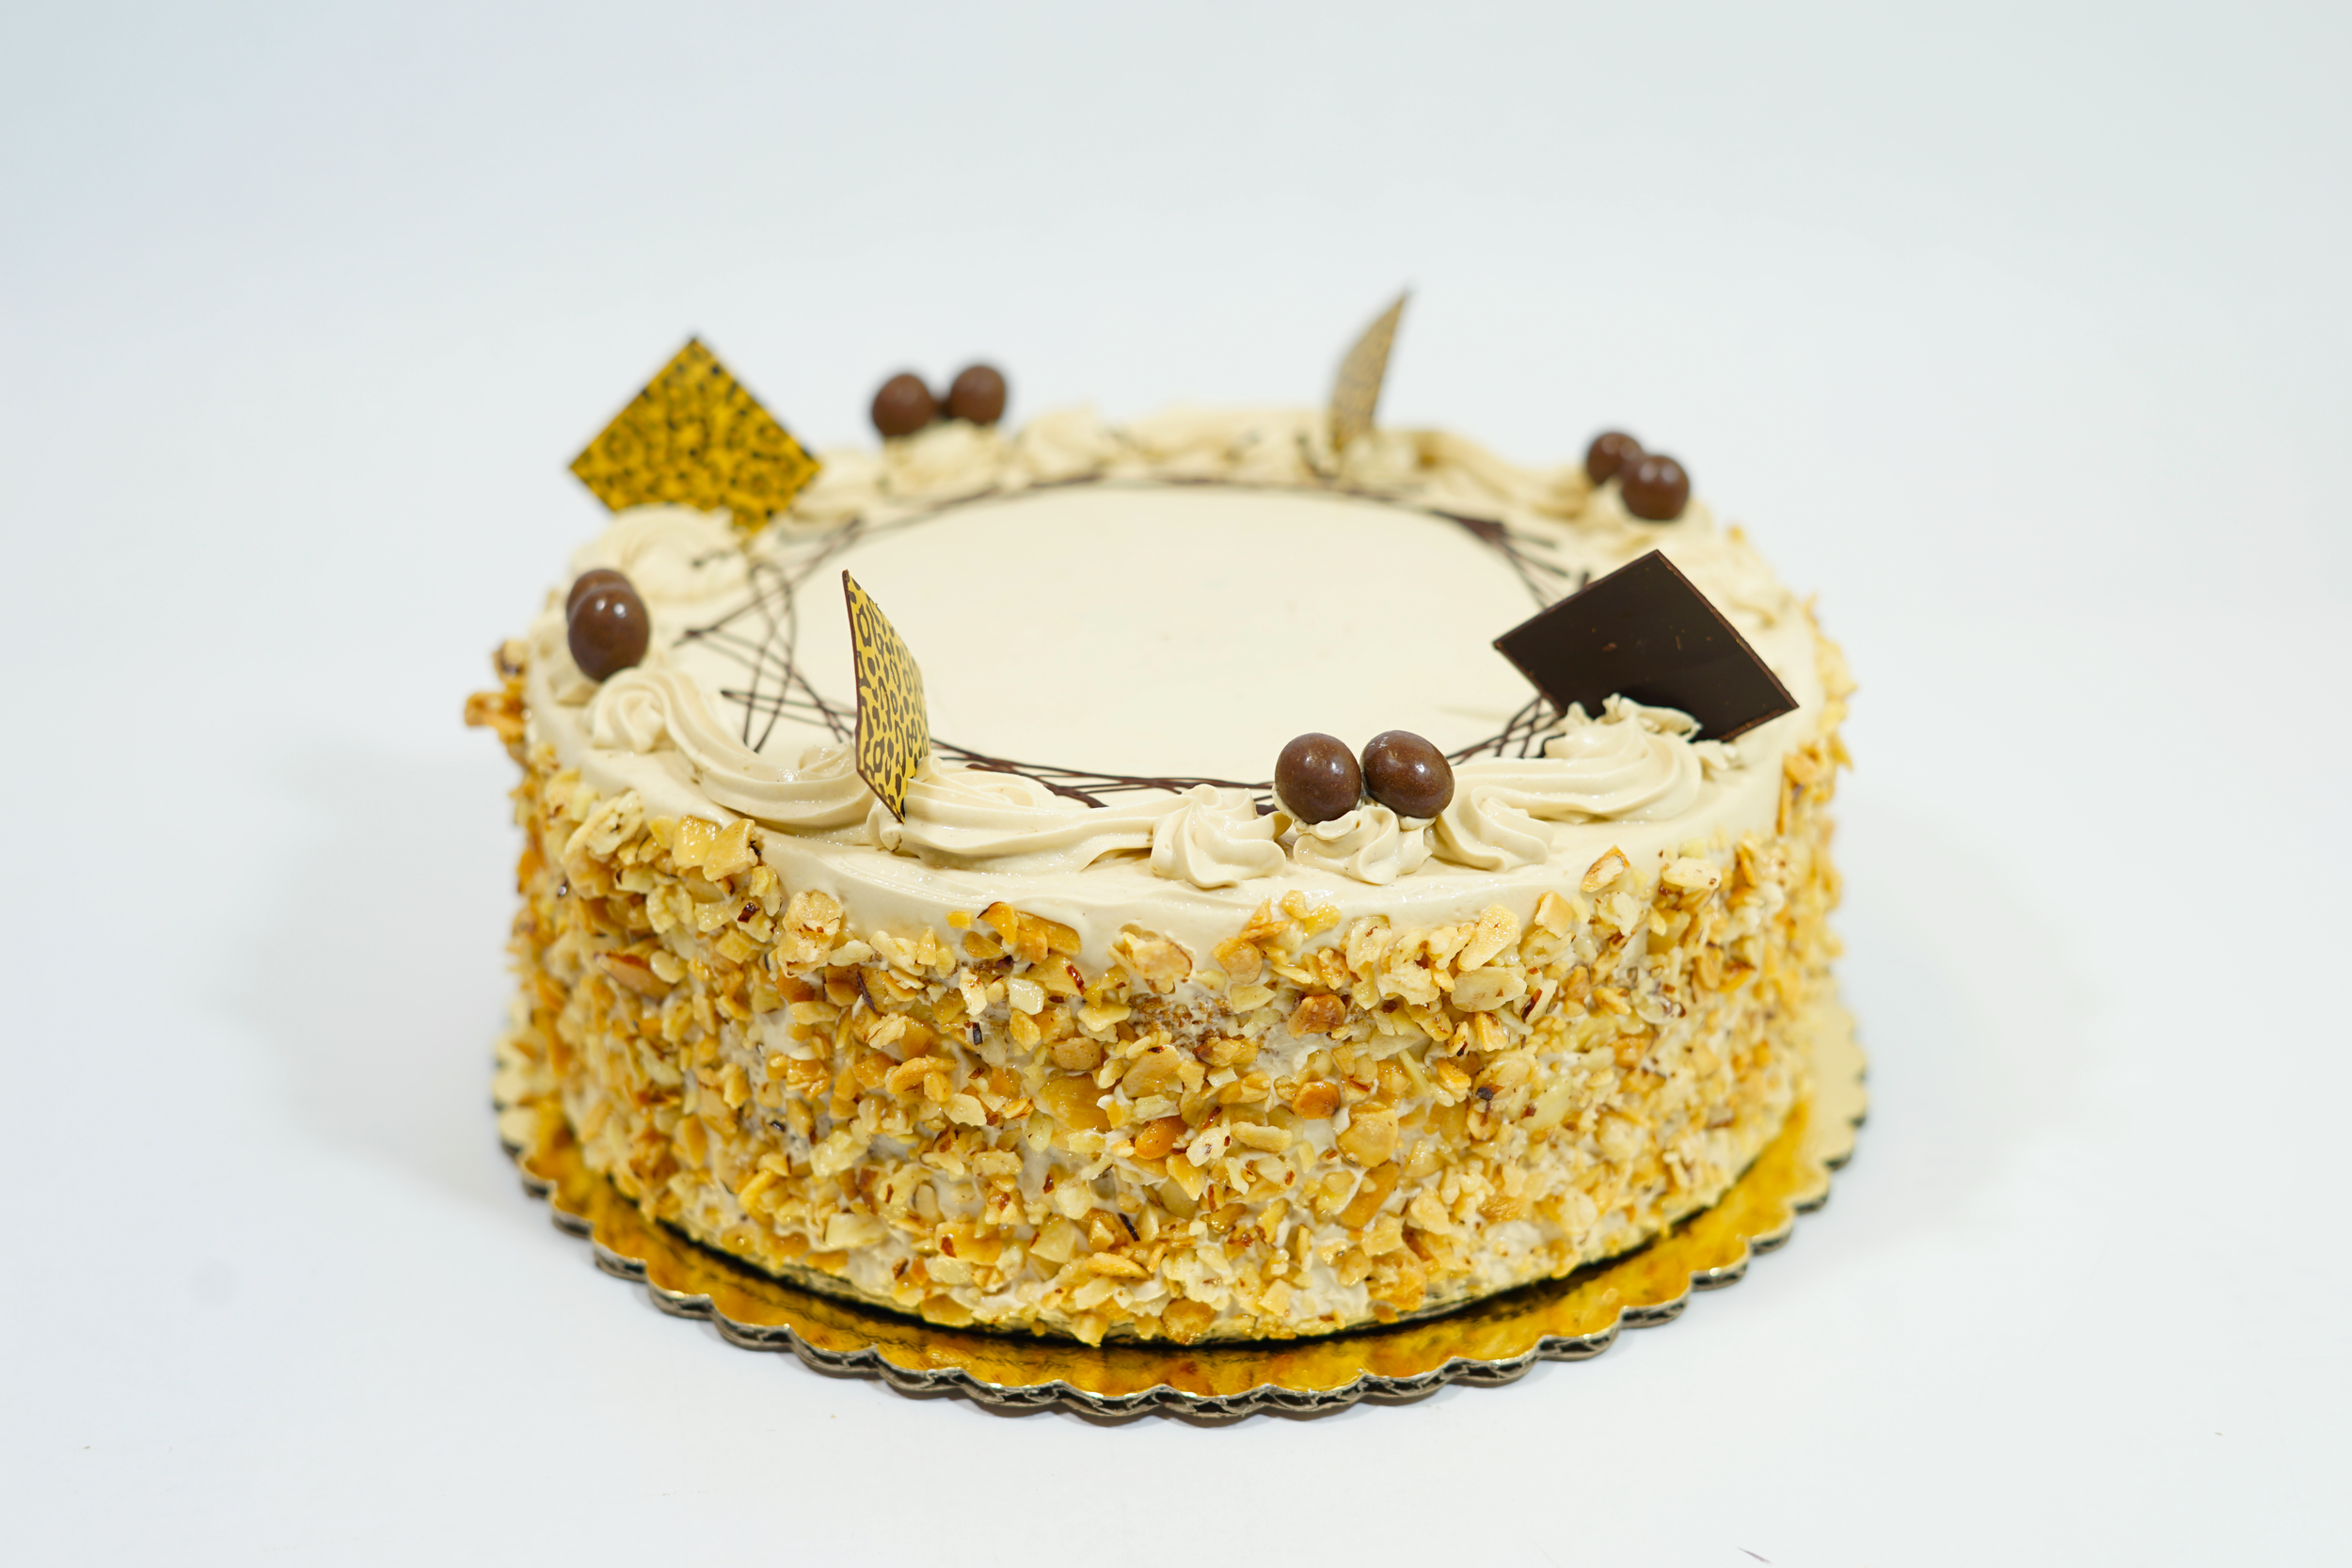 Mocha - Genoise sponge cake with a chocolate ganache layer and coffee filling. Frosted with coffee flavored buttercream and decorated with croquant on the sides.